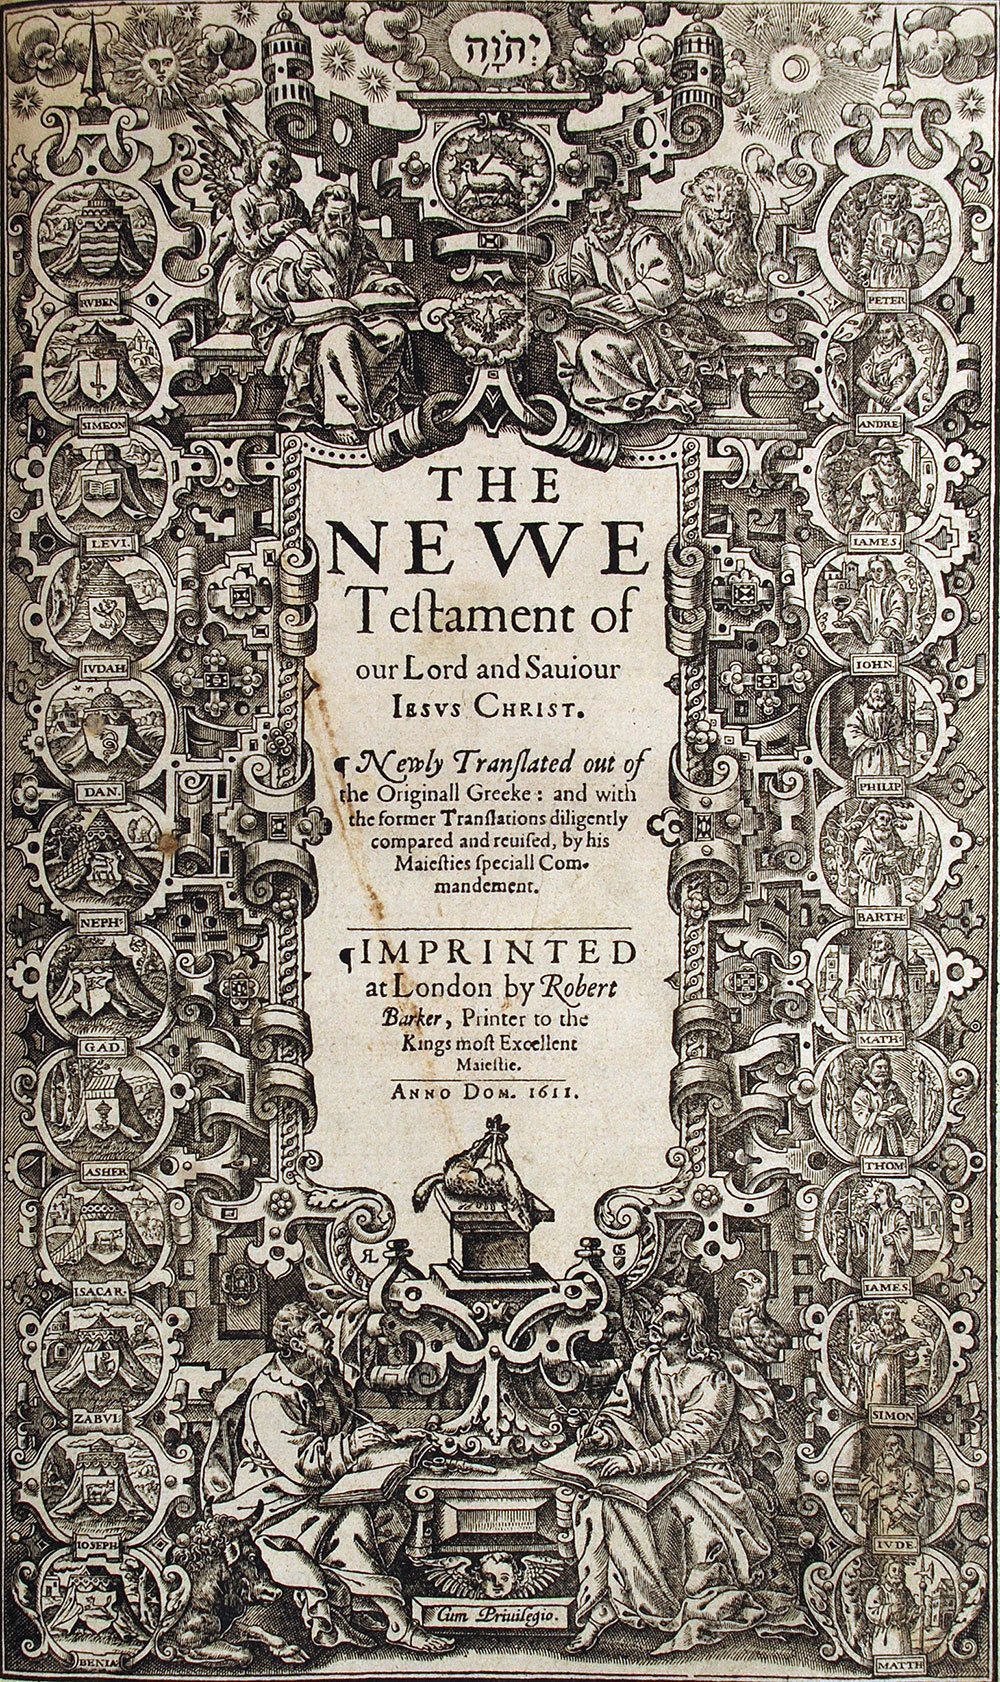 [King James Bible, English]. <em>The Holy Bible conteyning the Old Testament and the New: newly translated out of the originall tongues: & with the former translations diligently compared and reuised by his Maiesties speciall comandement …</em> London: Robert Barker, 1611.